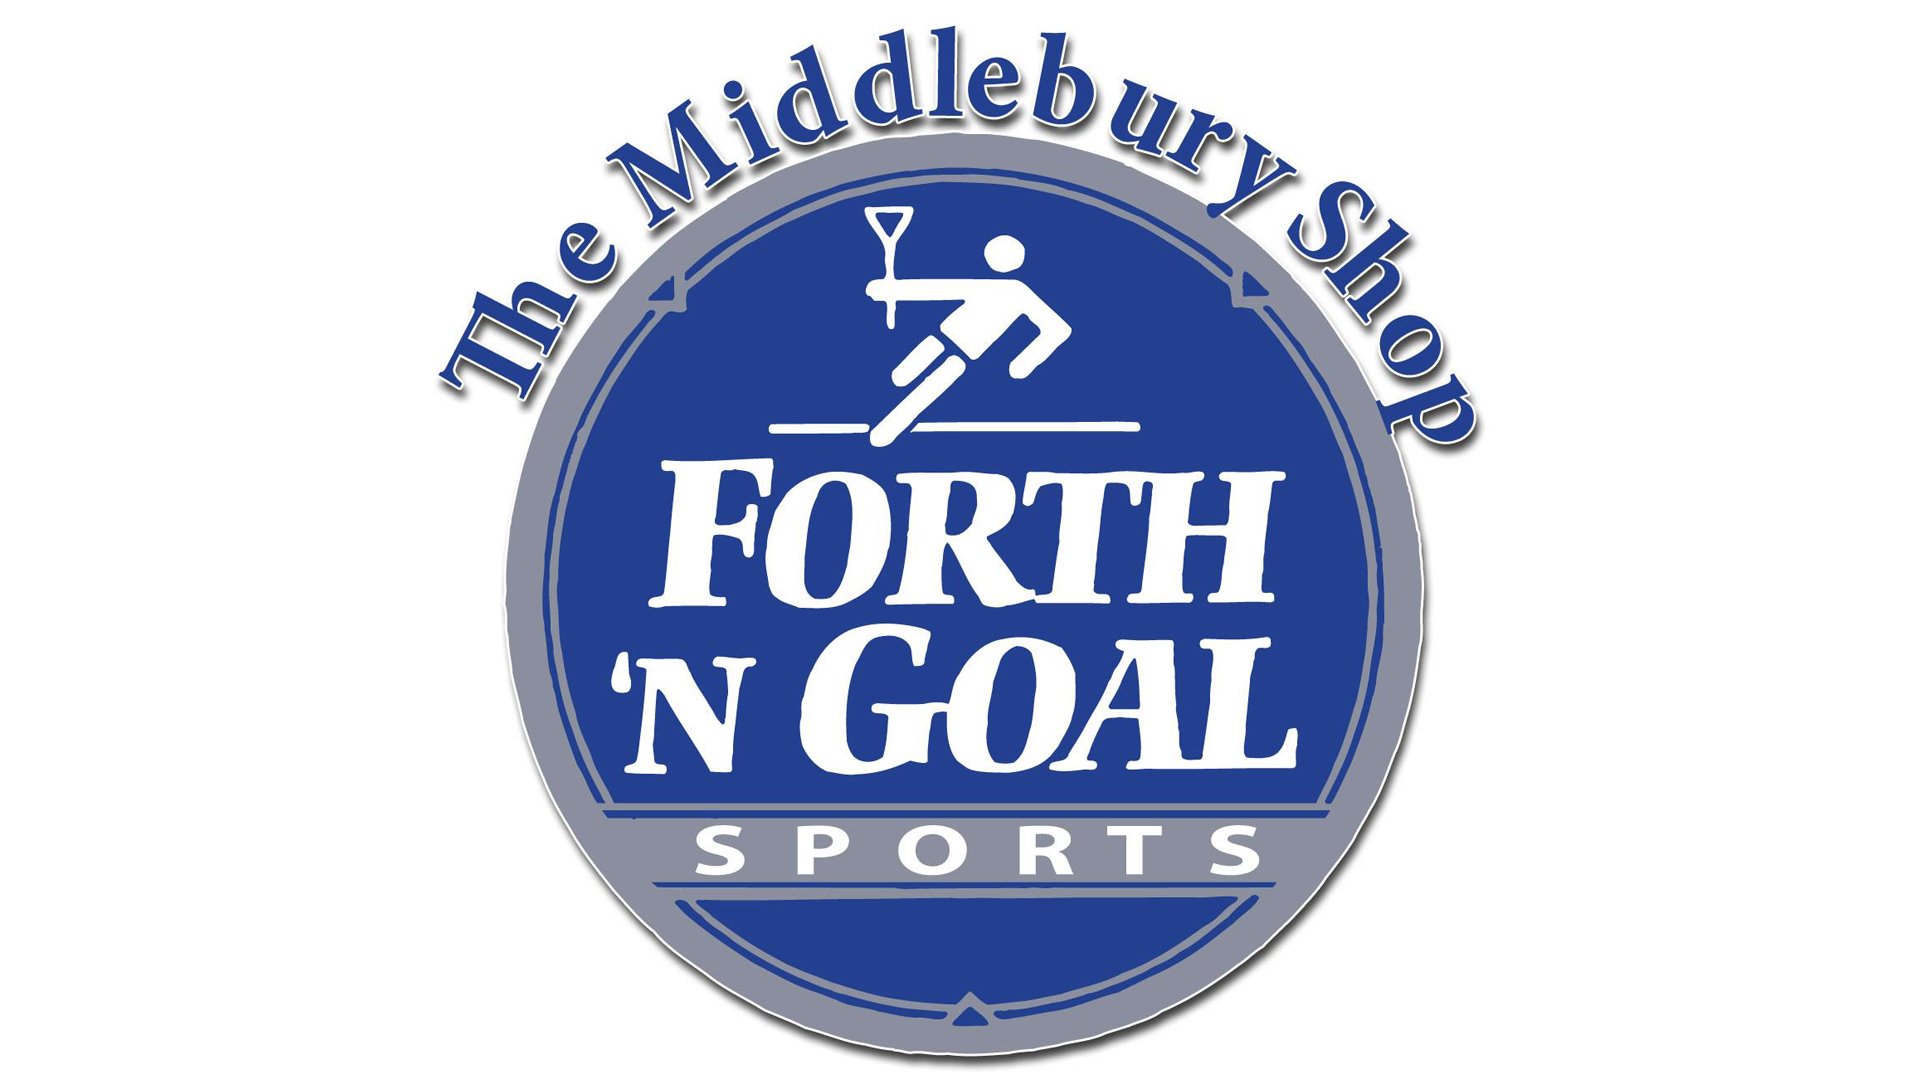 The Middlebury Shop